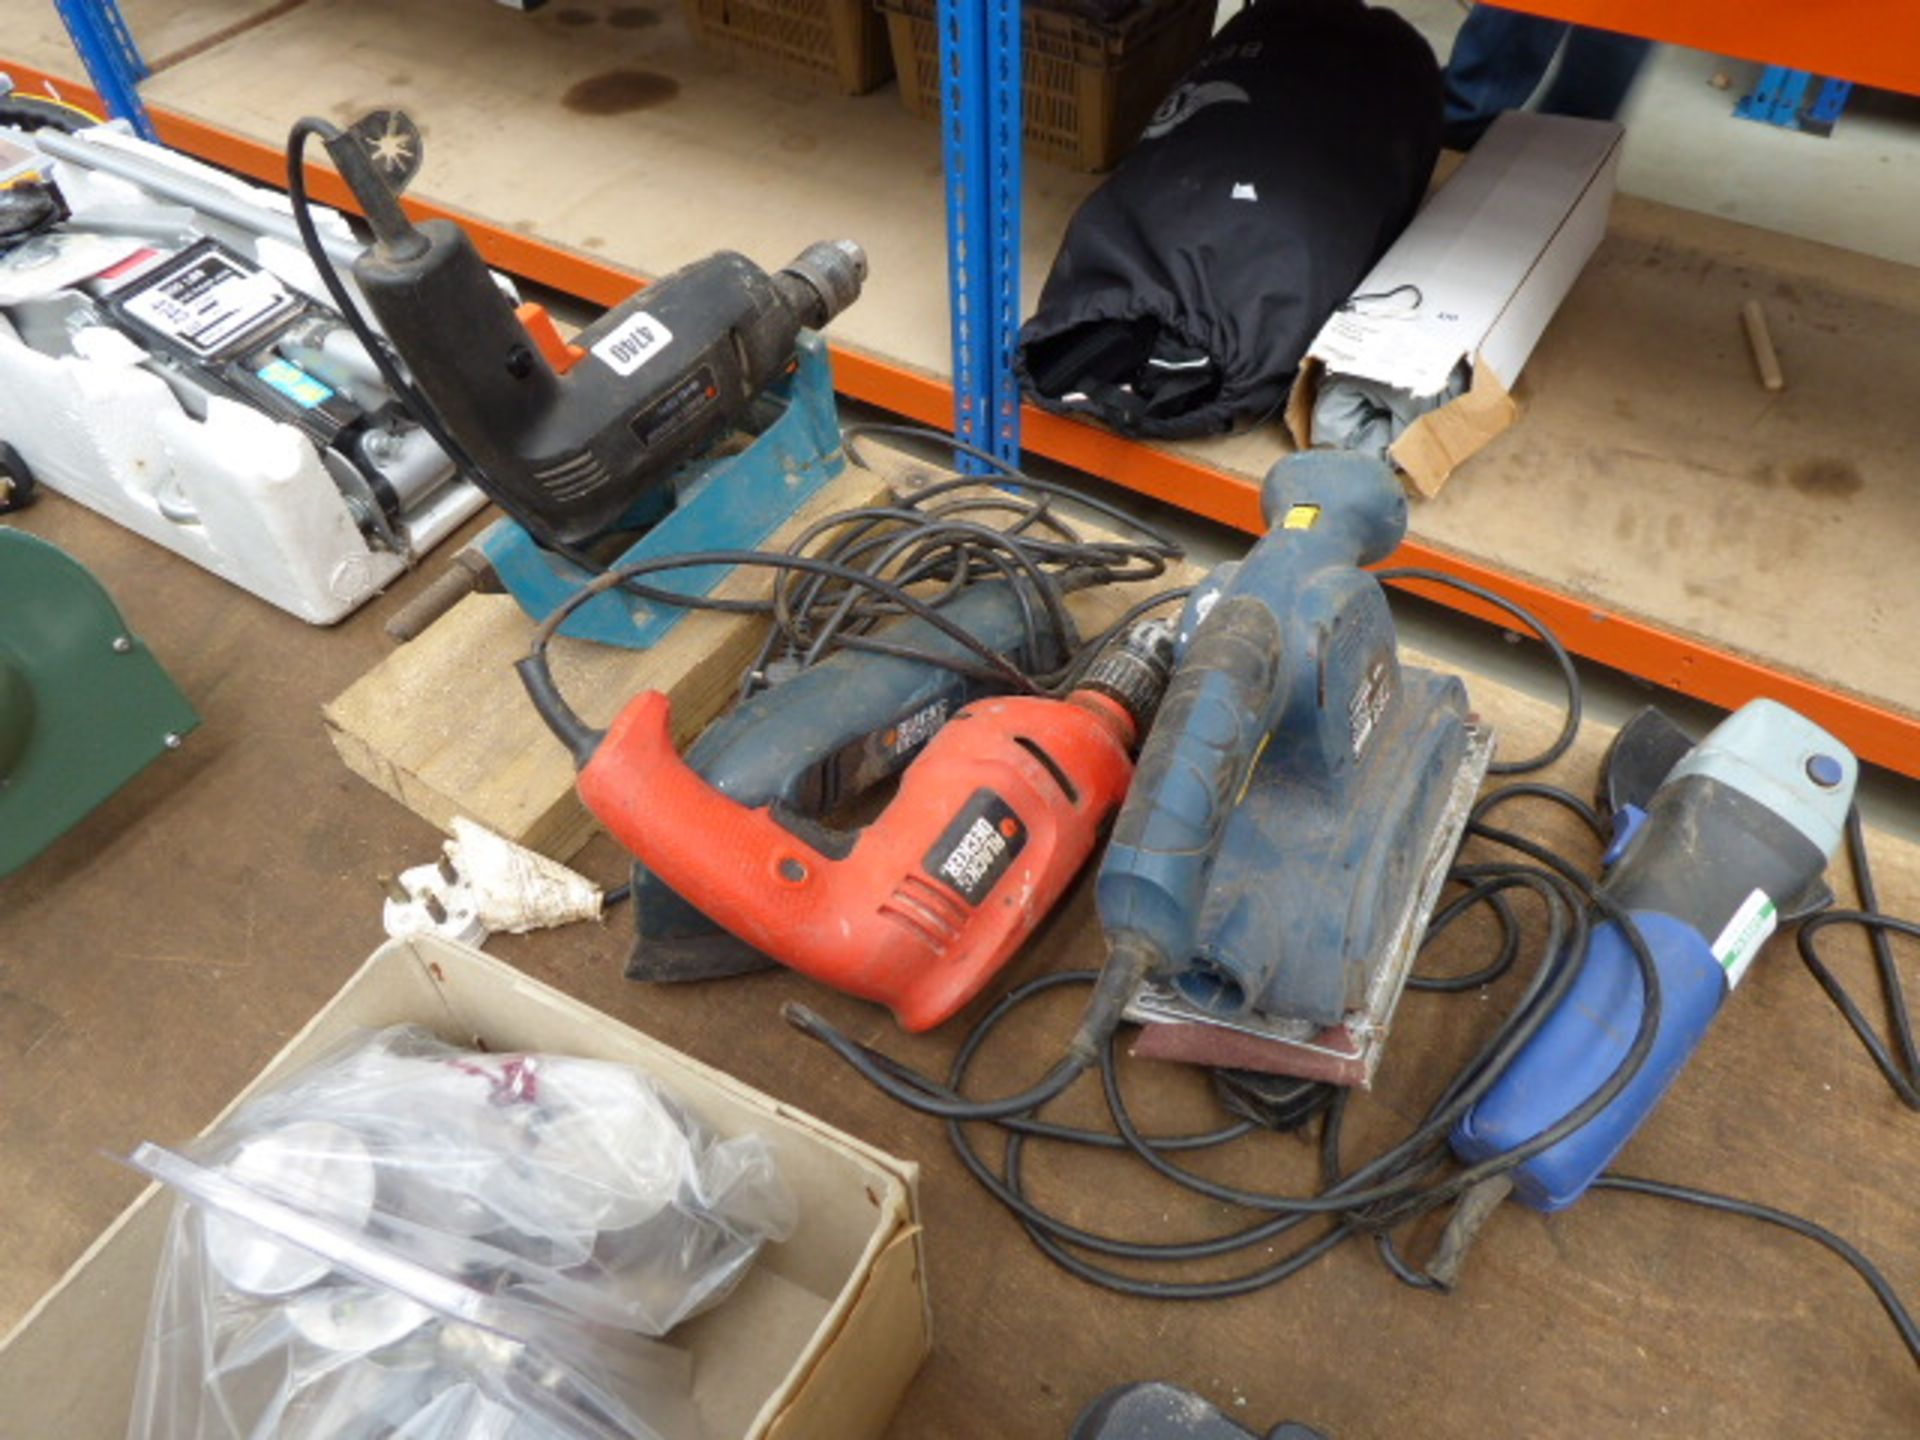 Lot 4740 - Two drills, two sanders and an angle grinder